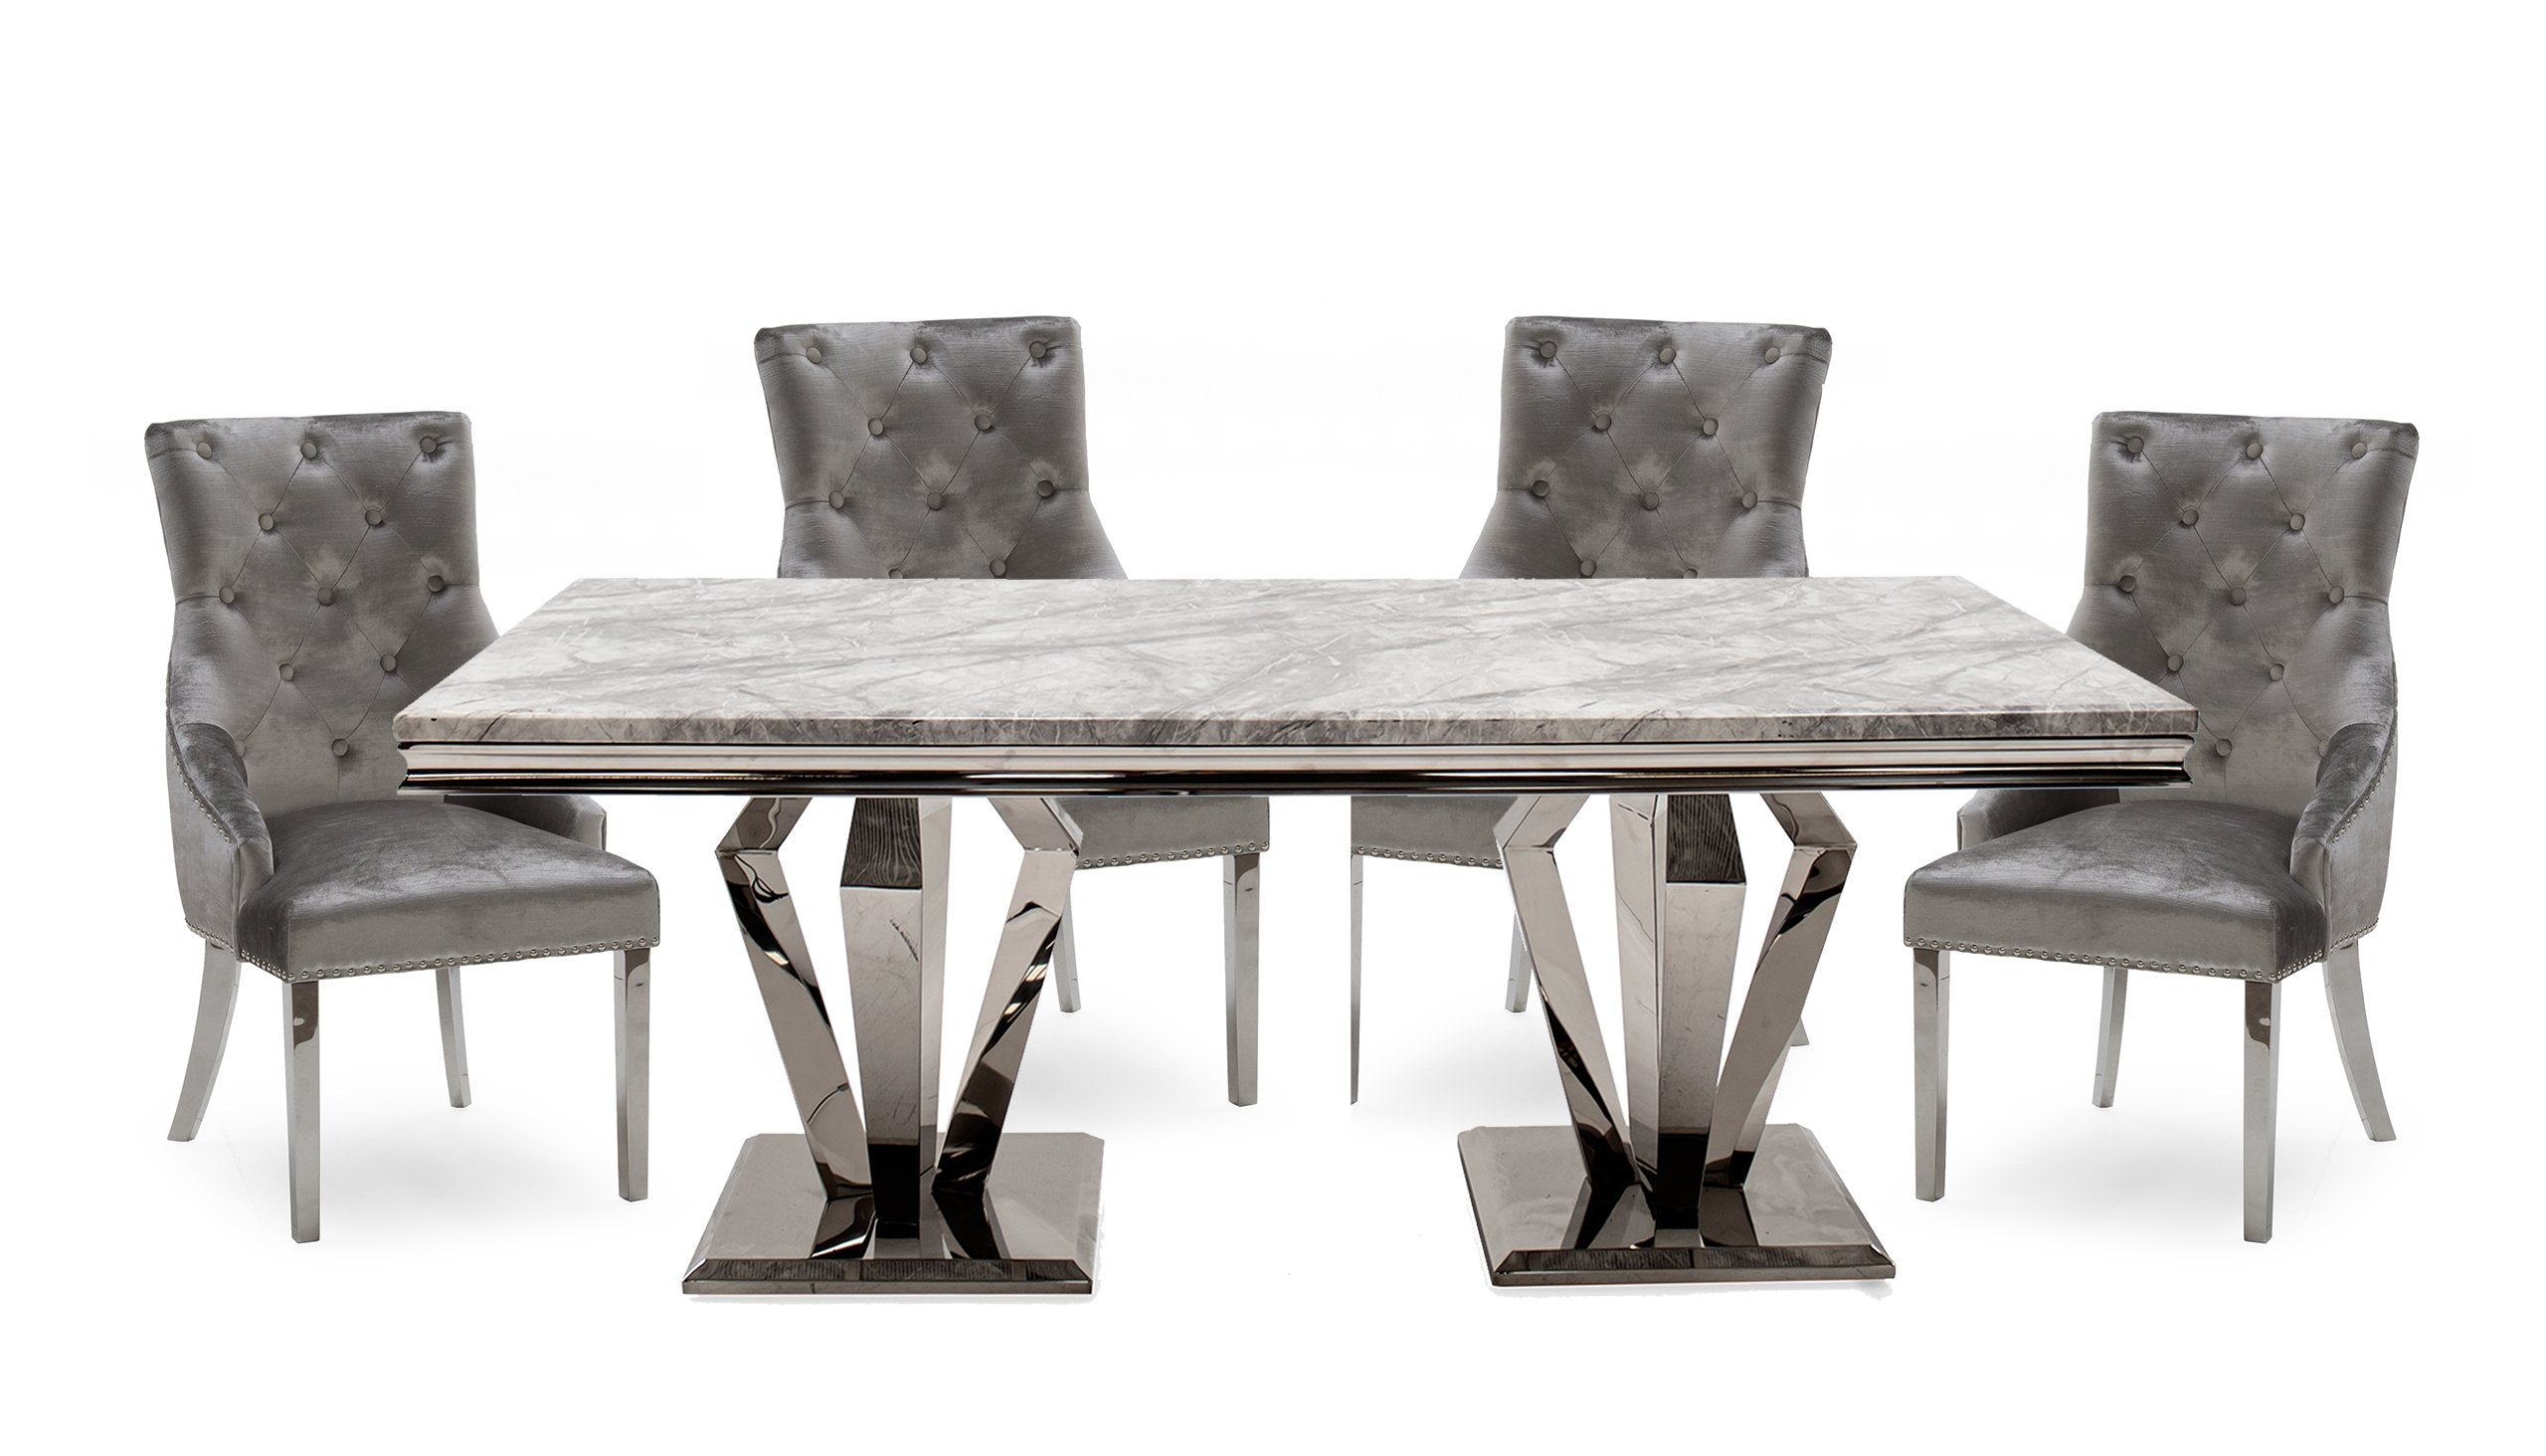 Amour 1.6m Marble Dining Table with 4 Chairs - AHF Furniture & Carpets